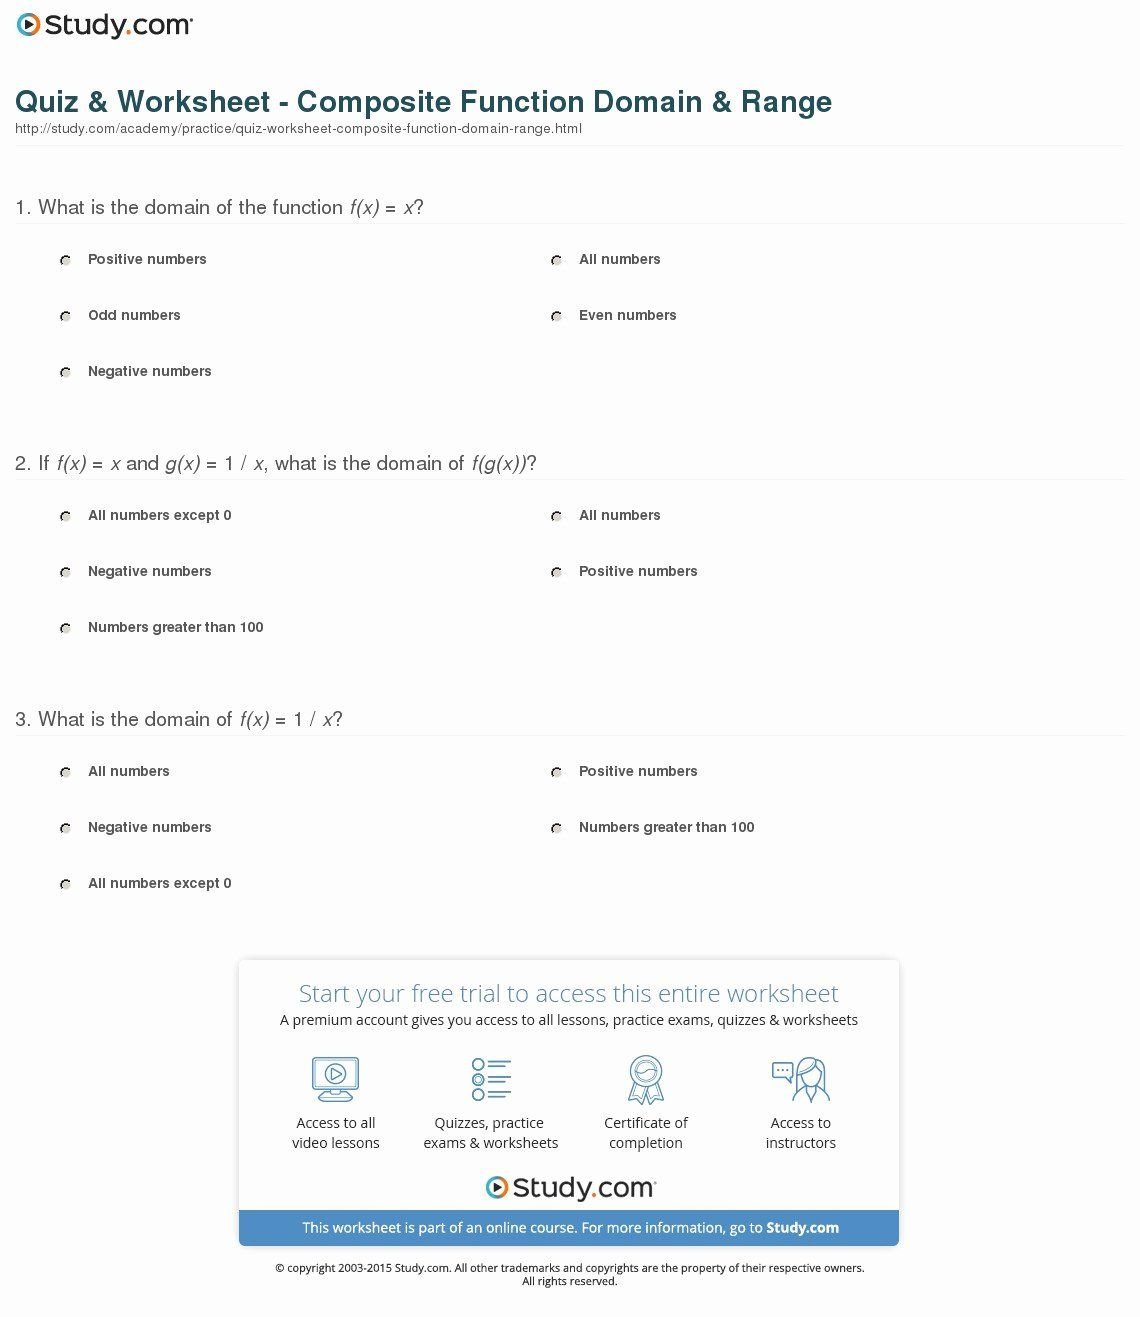 Domain And Range Practice Worksheet Awesome Mr Suominen S Math Homepage Nov In 2020 Word Problem Worksheets Graphing Linear Equations Scientific Notation Word Problems